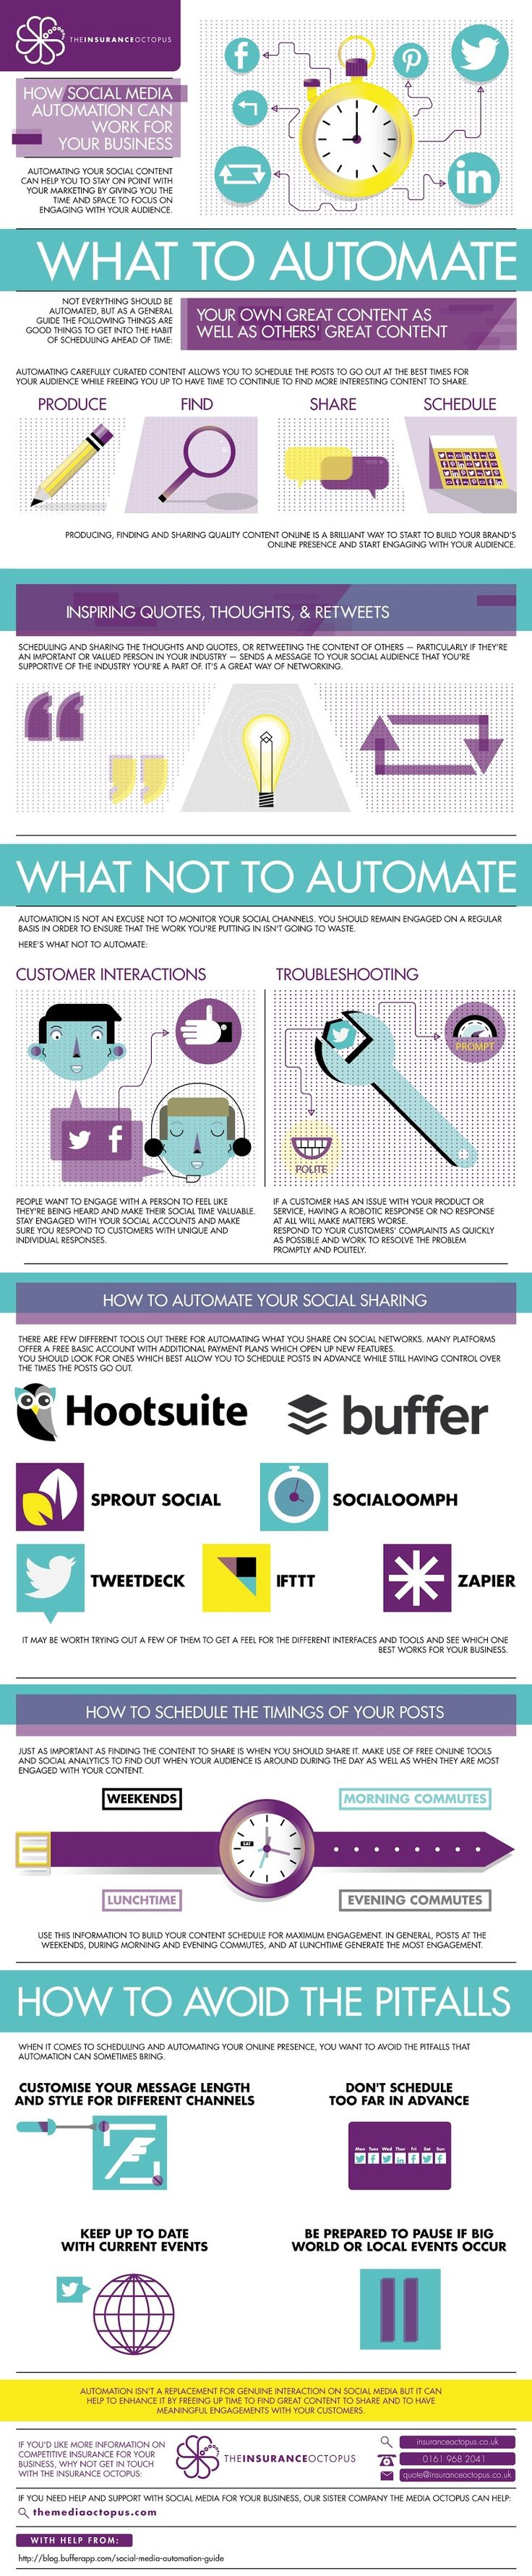 How Social Media Automation Can Work For Your Brand - #infographic #socialmedia #contentmarketing